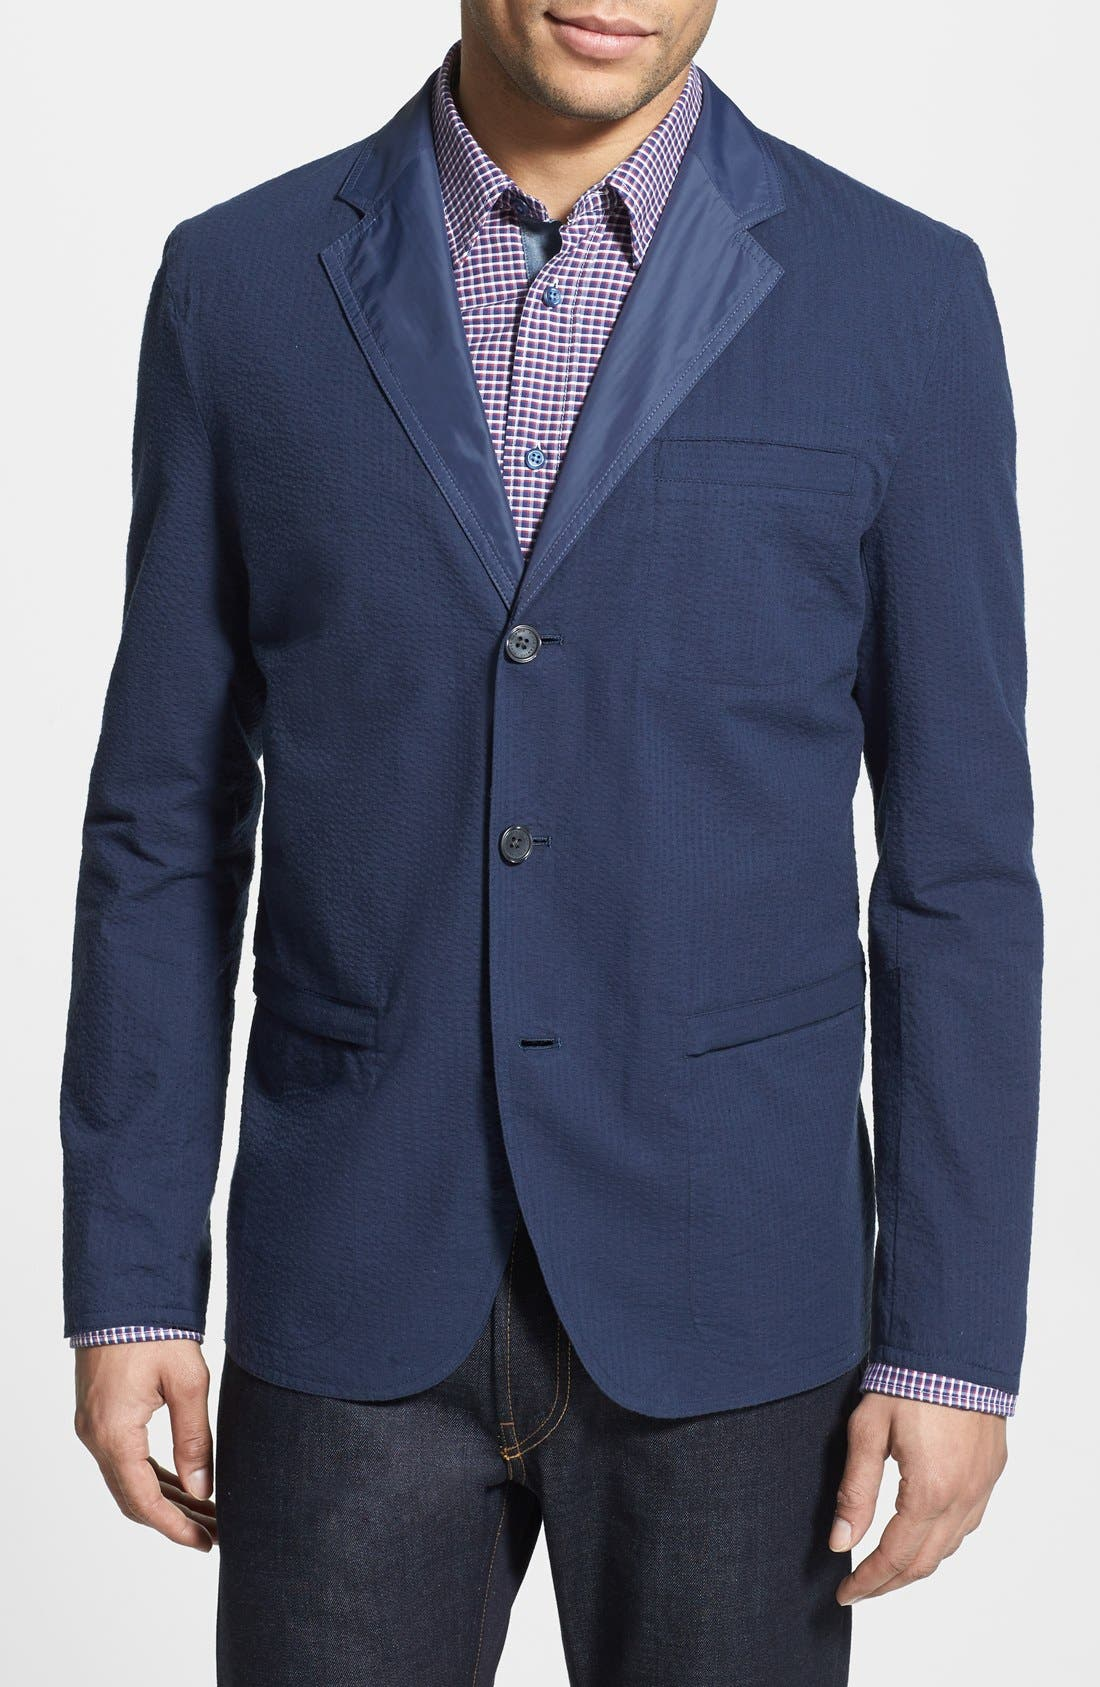 Alternate Image 1 Selected - Vince Camuto Slim Fit Reversible Seersucker Blazer